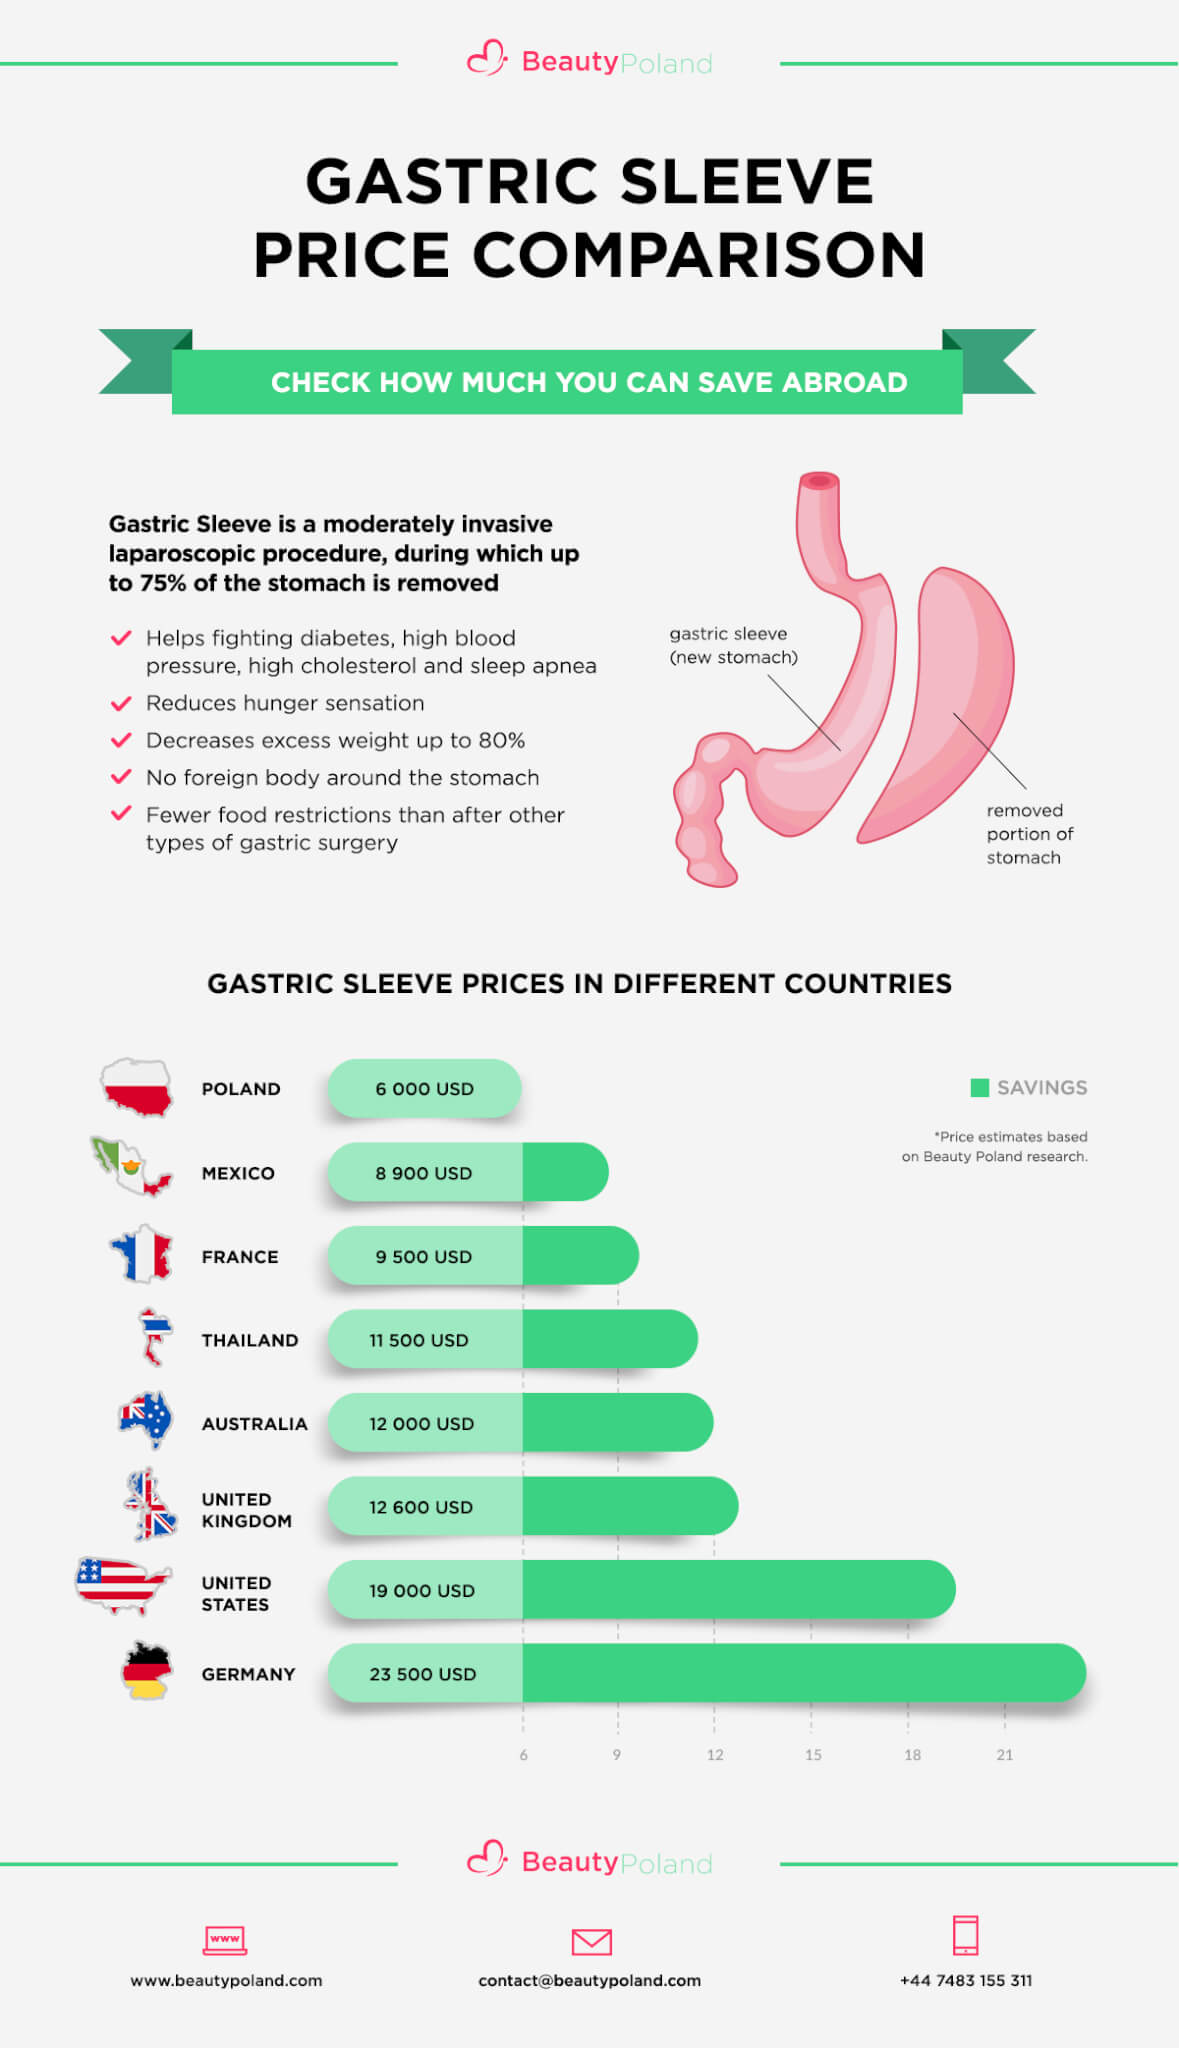 Prices of a Gastric Sleeve Surgery in Various Countries